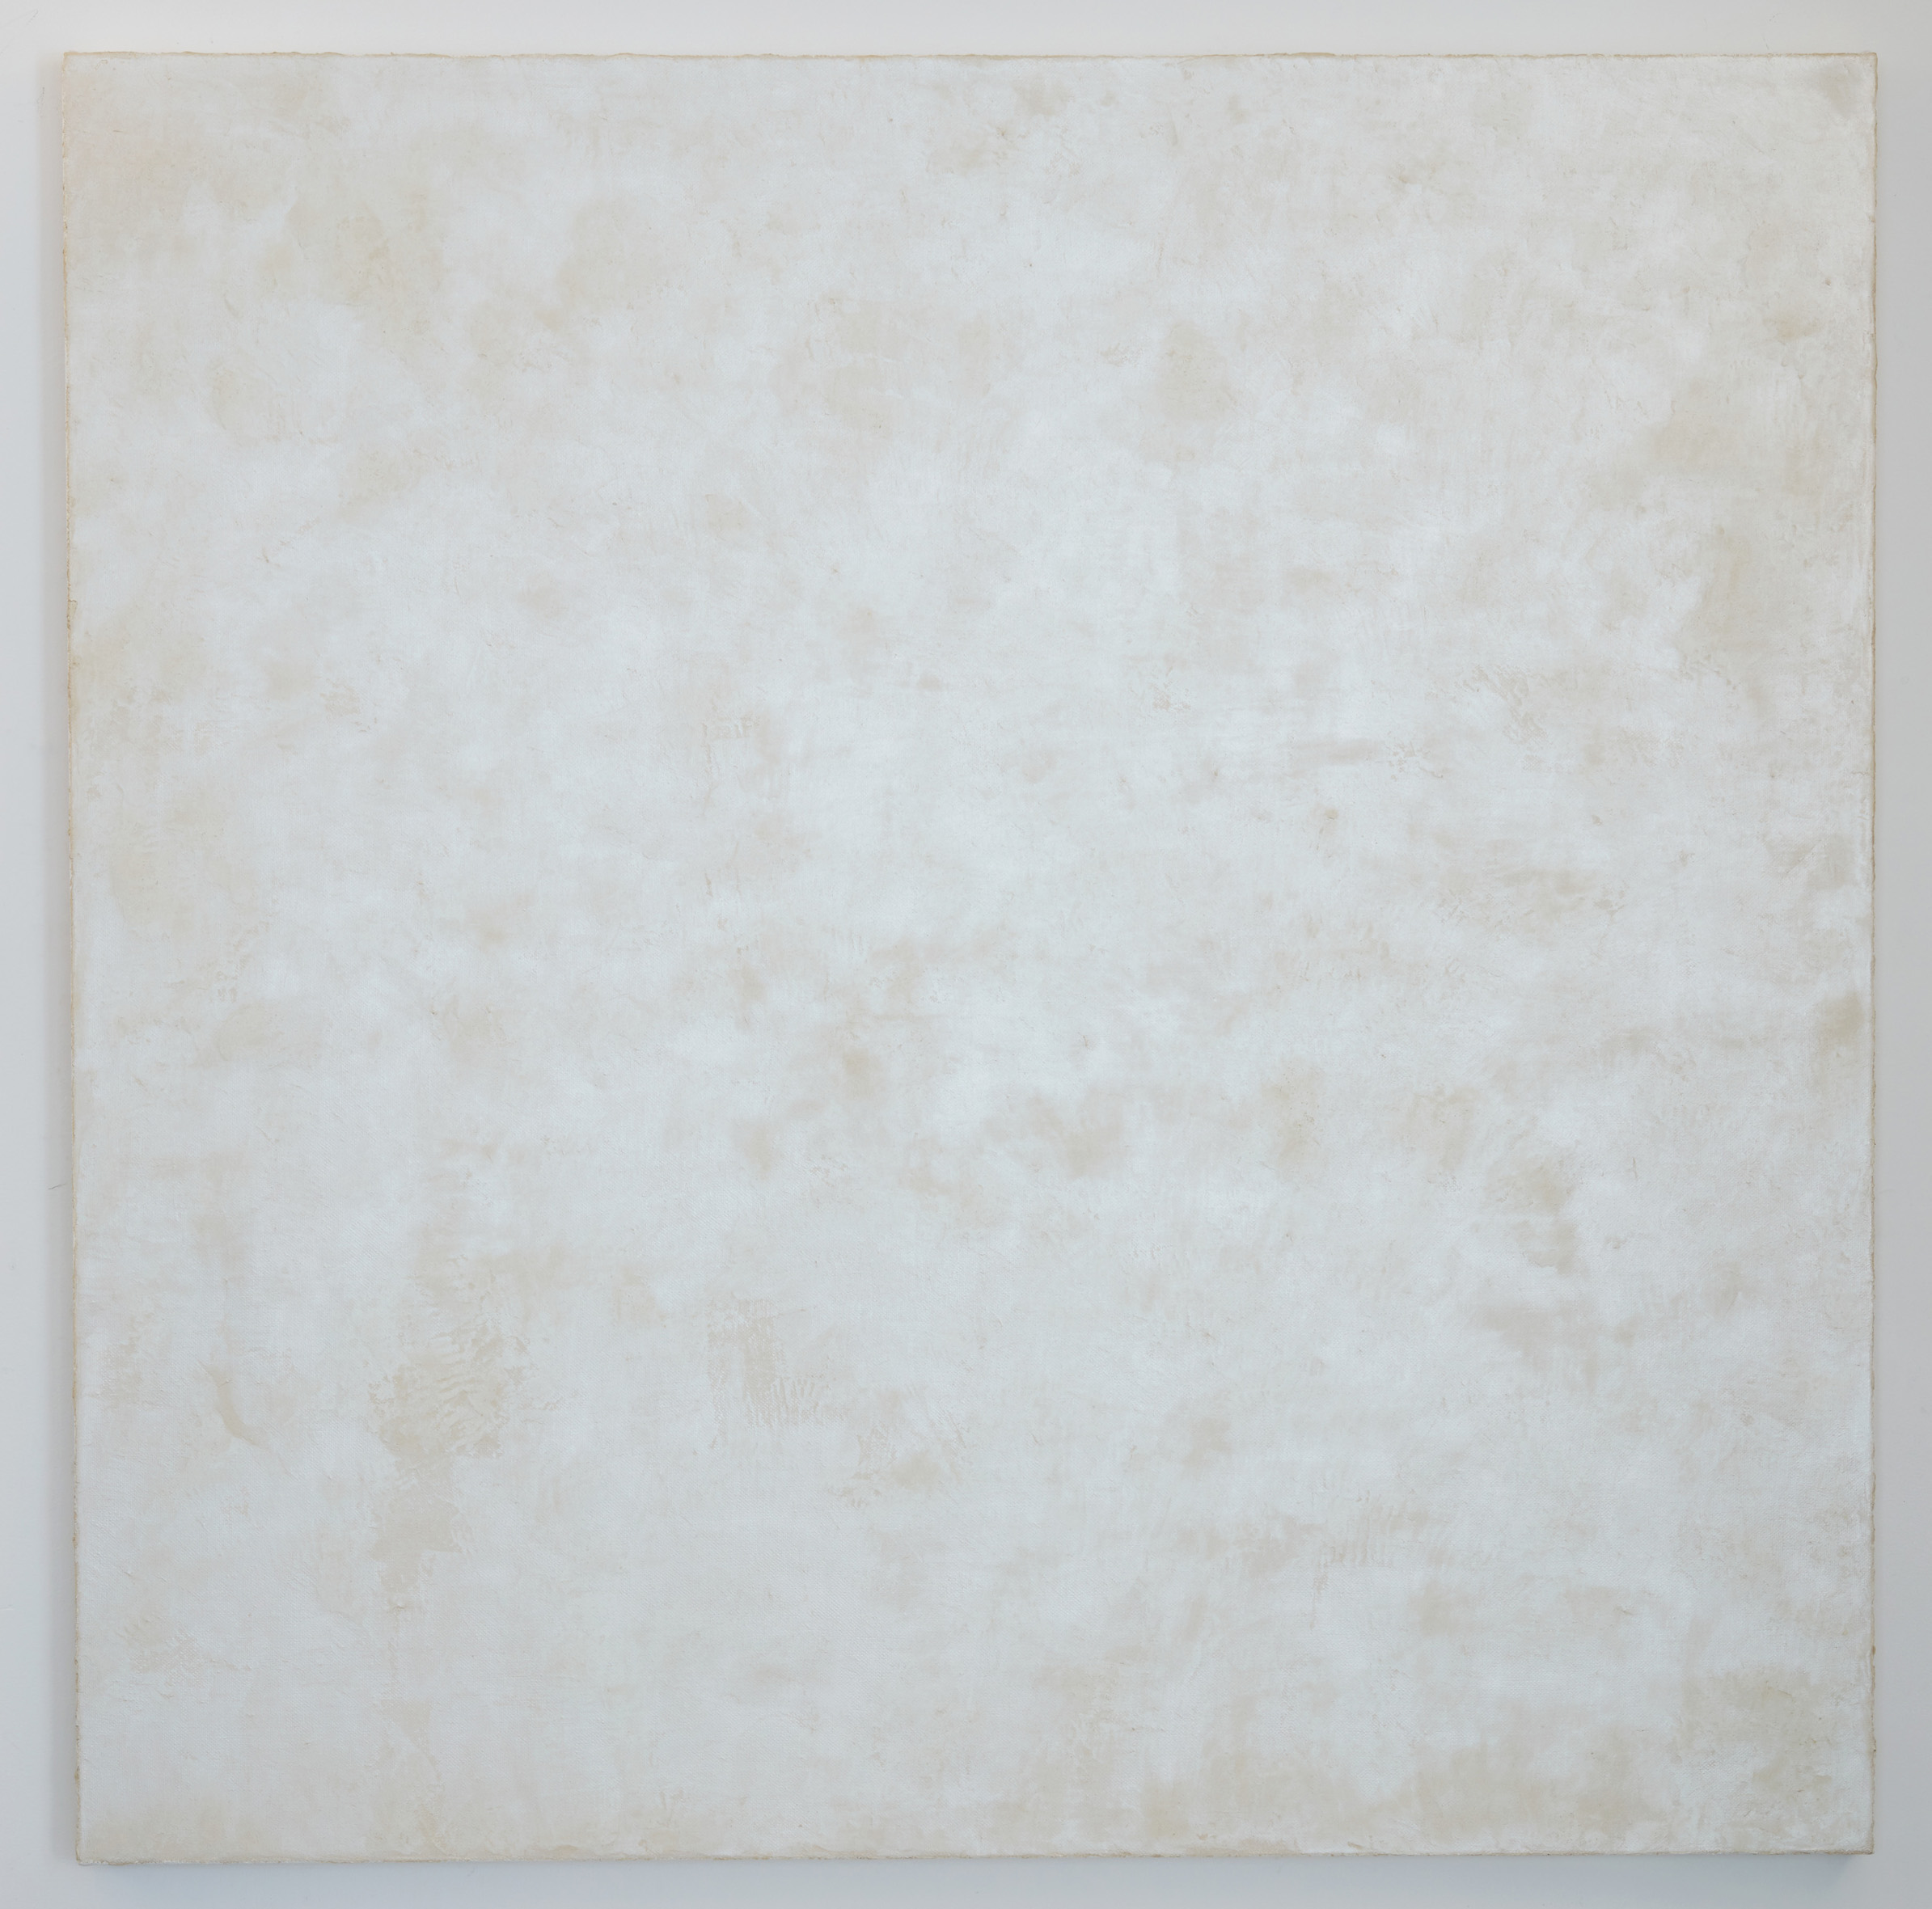 DAVID SERISIER  white mica square painting 1 , 2018 oil and wax on linen 200.5 x 200.5 cm